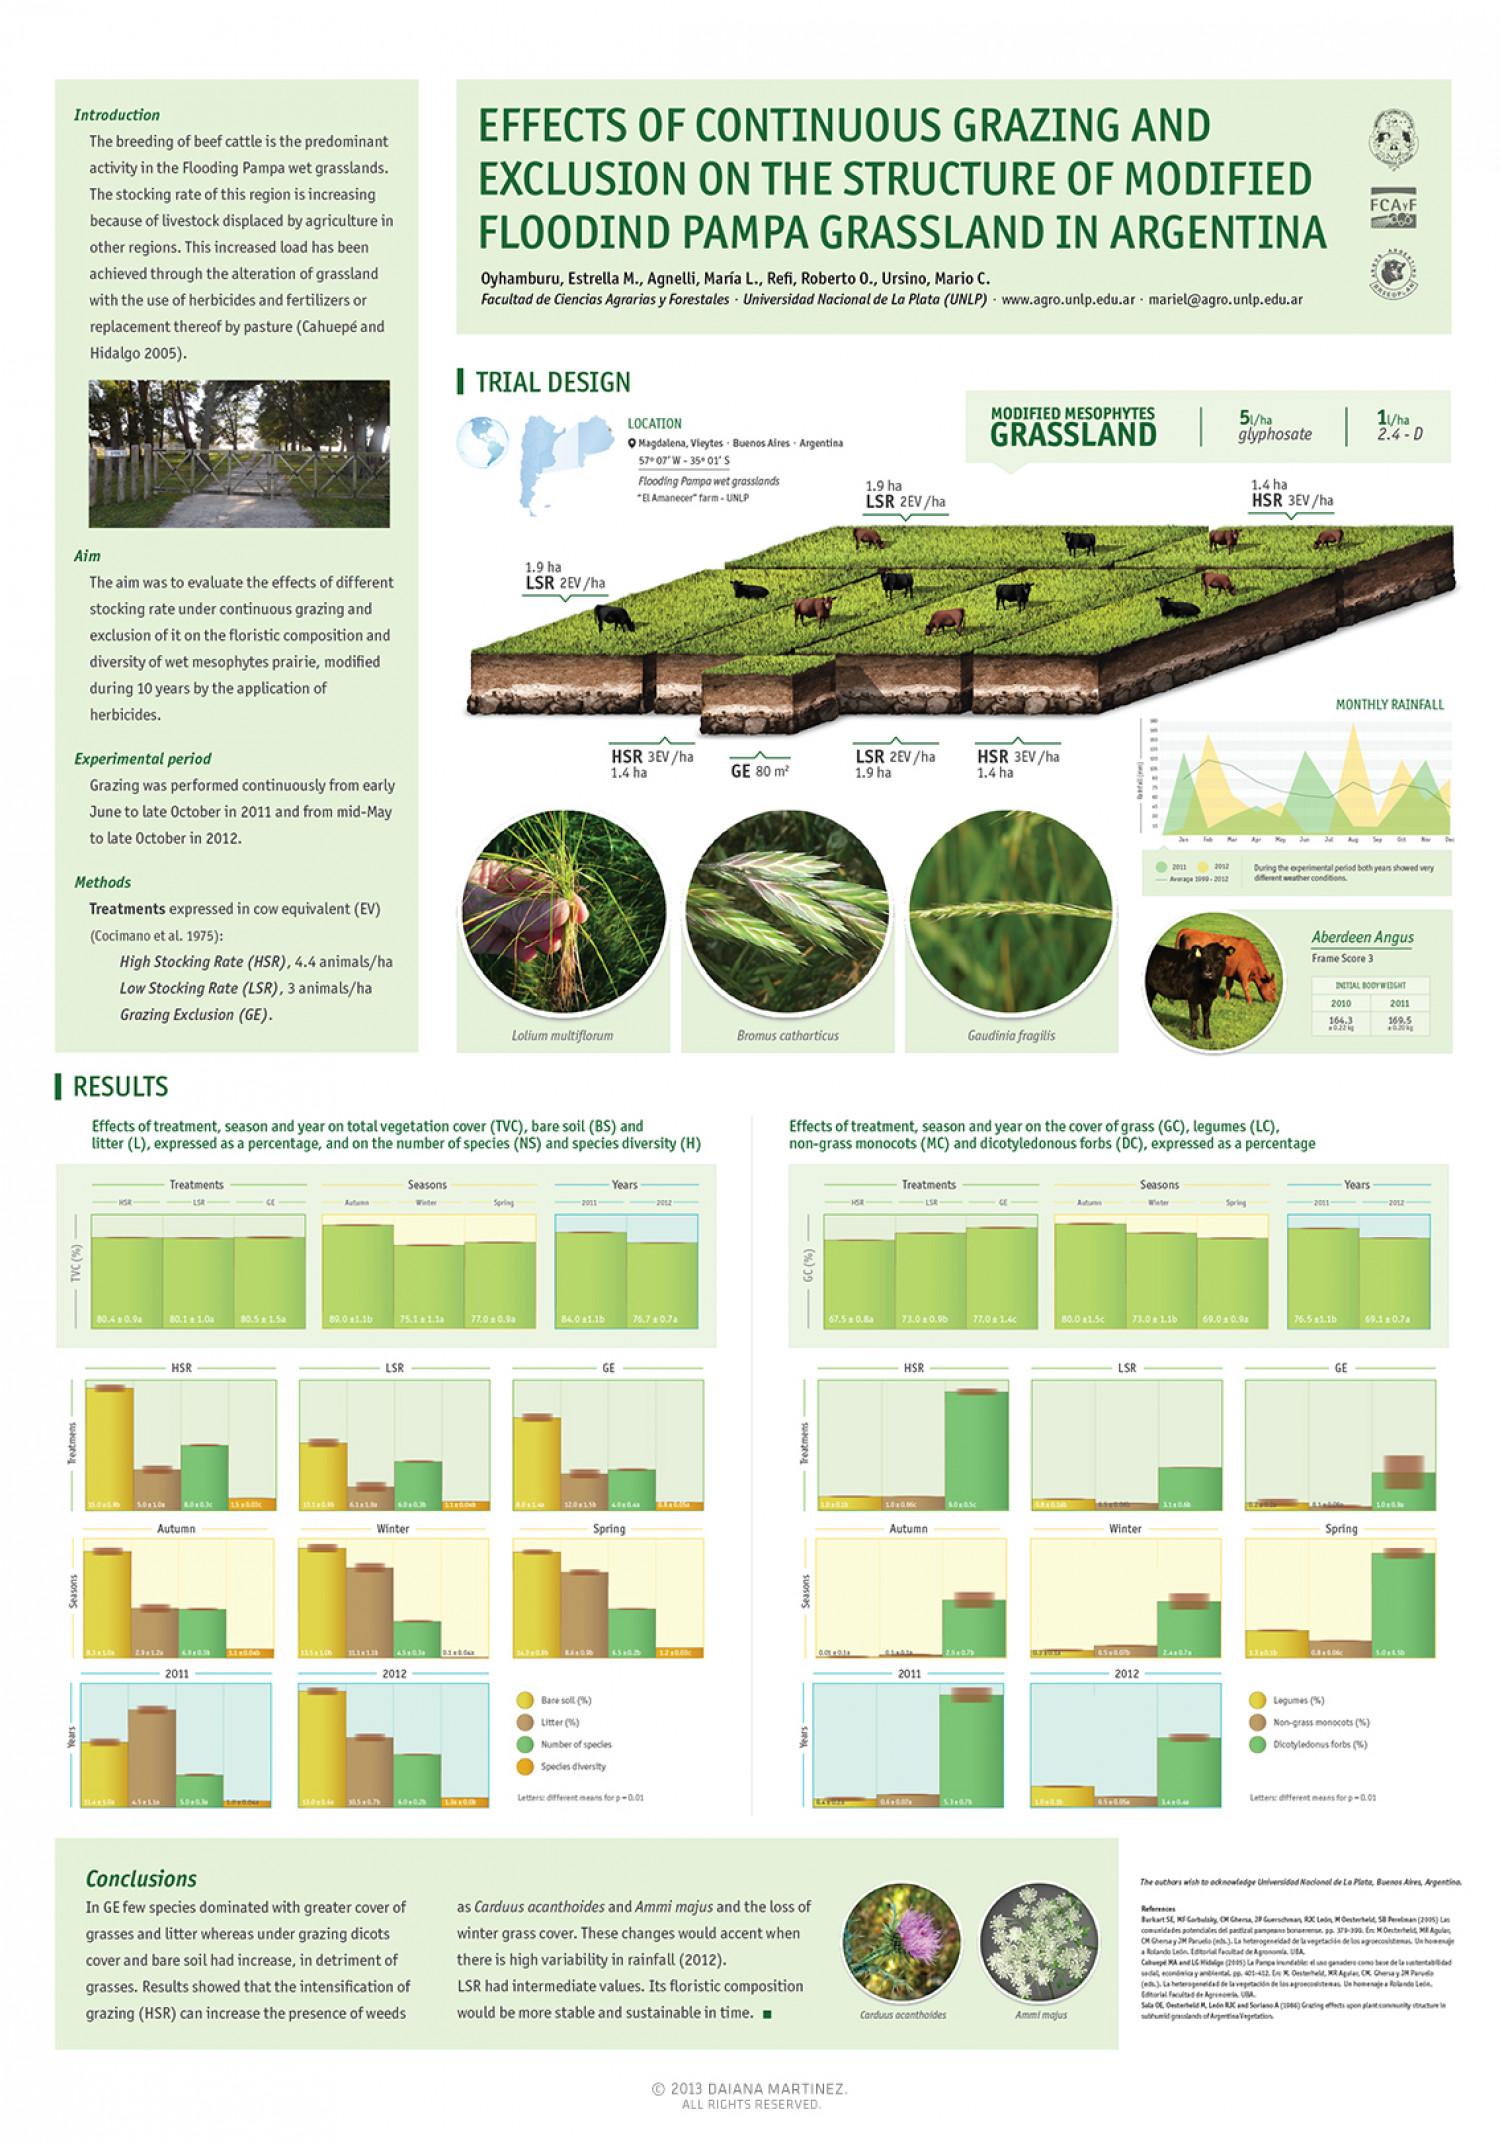 Effects of continuous grazing on grassland structure Infographic